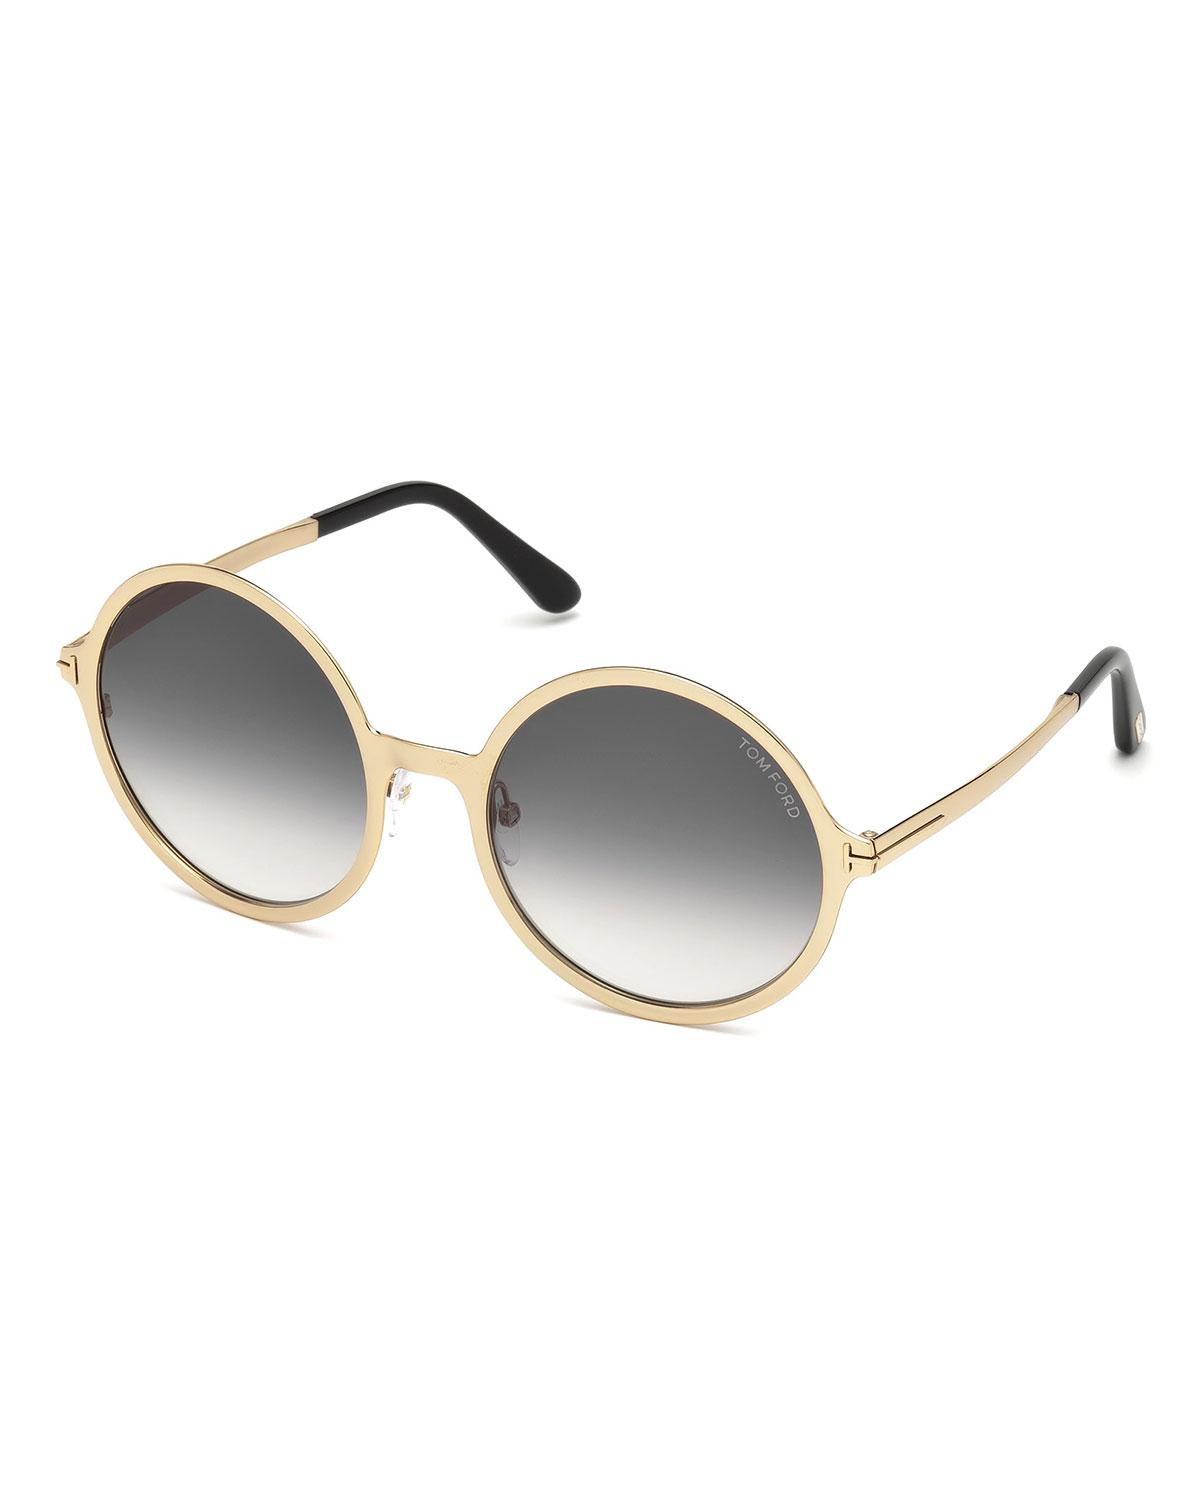 e369fd3b063 Tom Ford - Metallic Round Gradient Metal Sunglasses - Lyst. View fullscreen